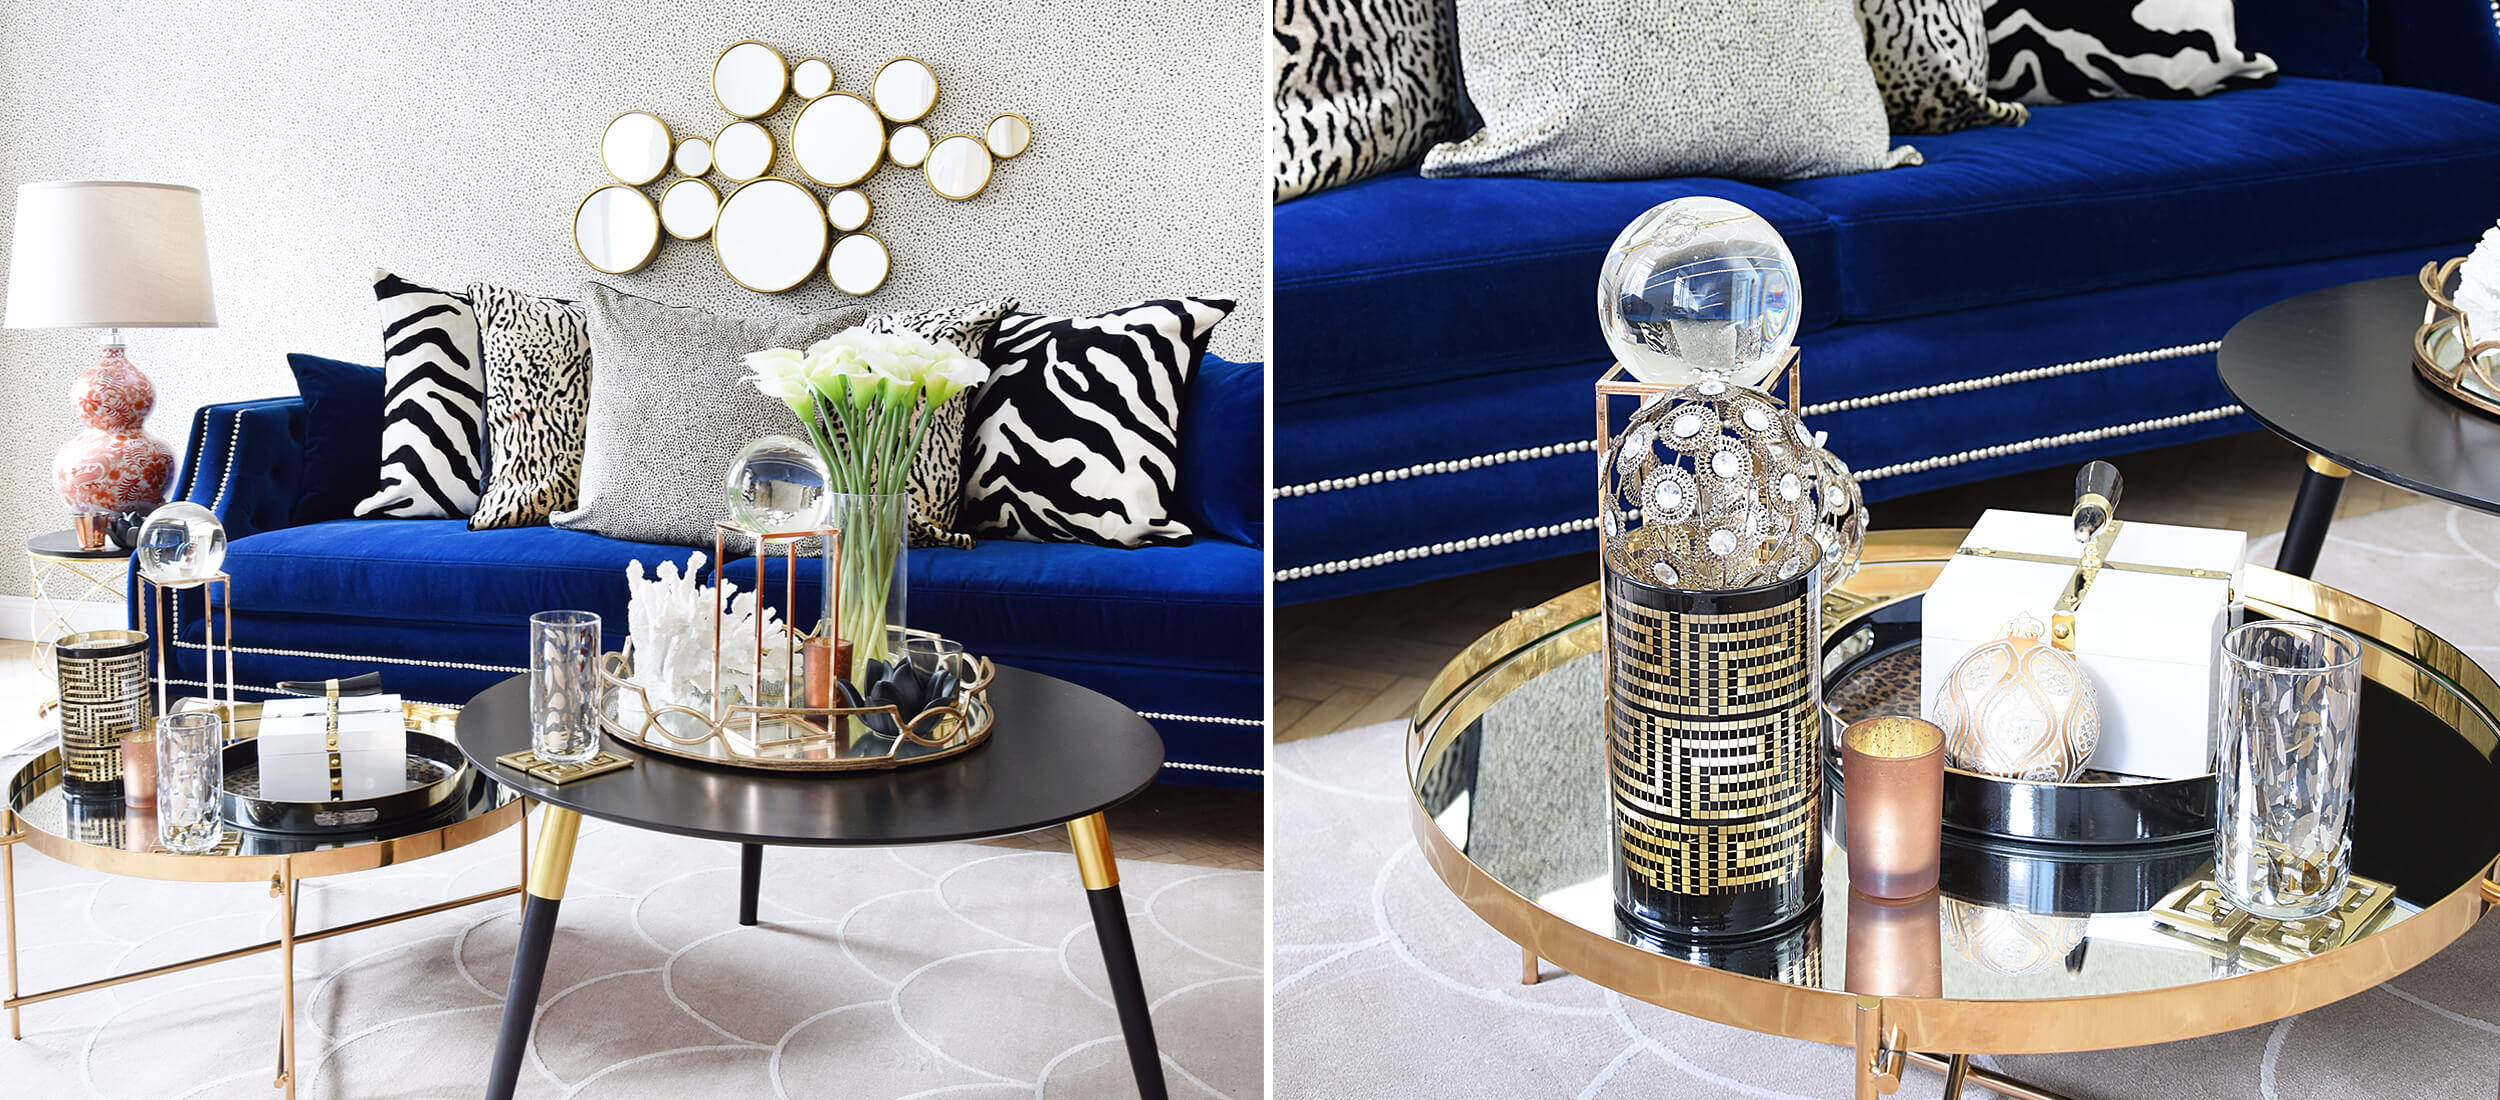 Interior Trend Collection - Animal Print!